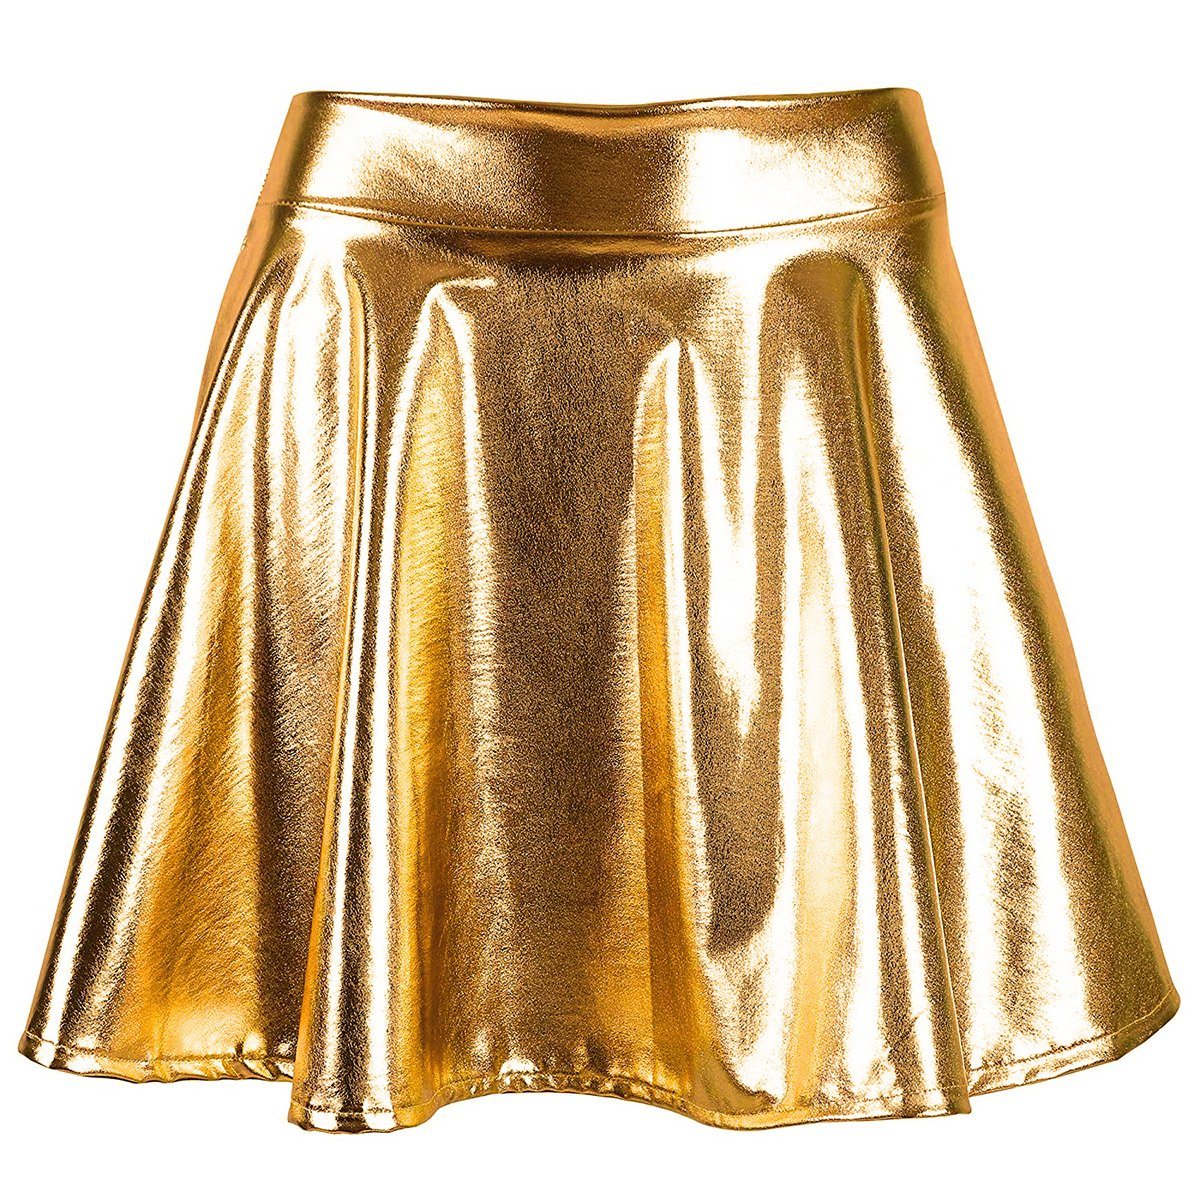 Mother's Day Gifts Pleated Skirt Short Shiny Liquid Metallic Flared Skater Skirt Golden, Small by TQS (Image #2)